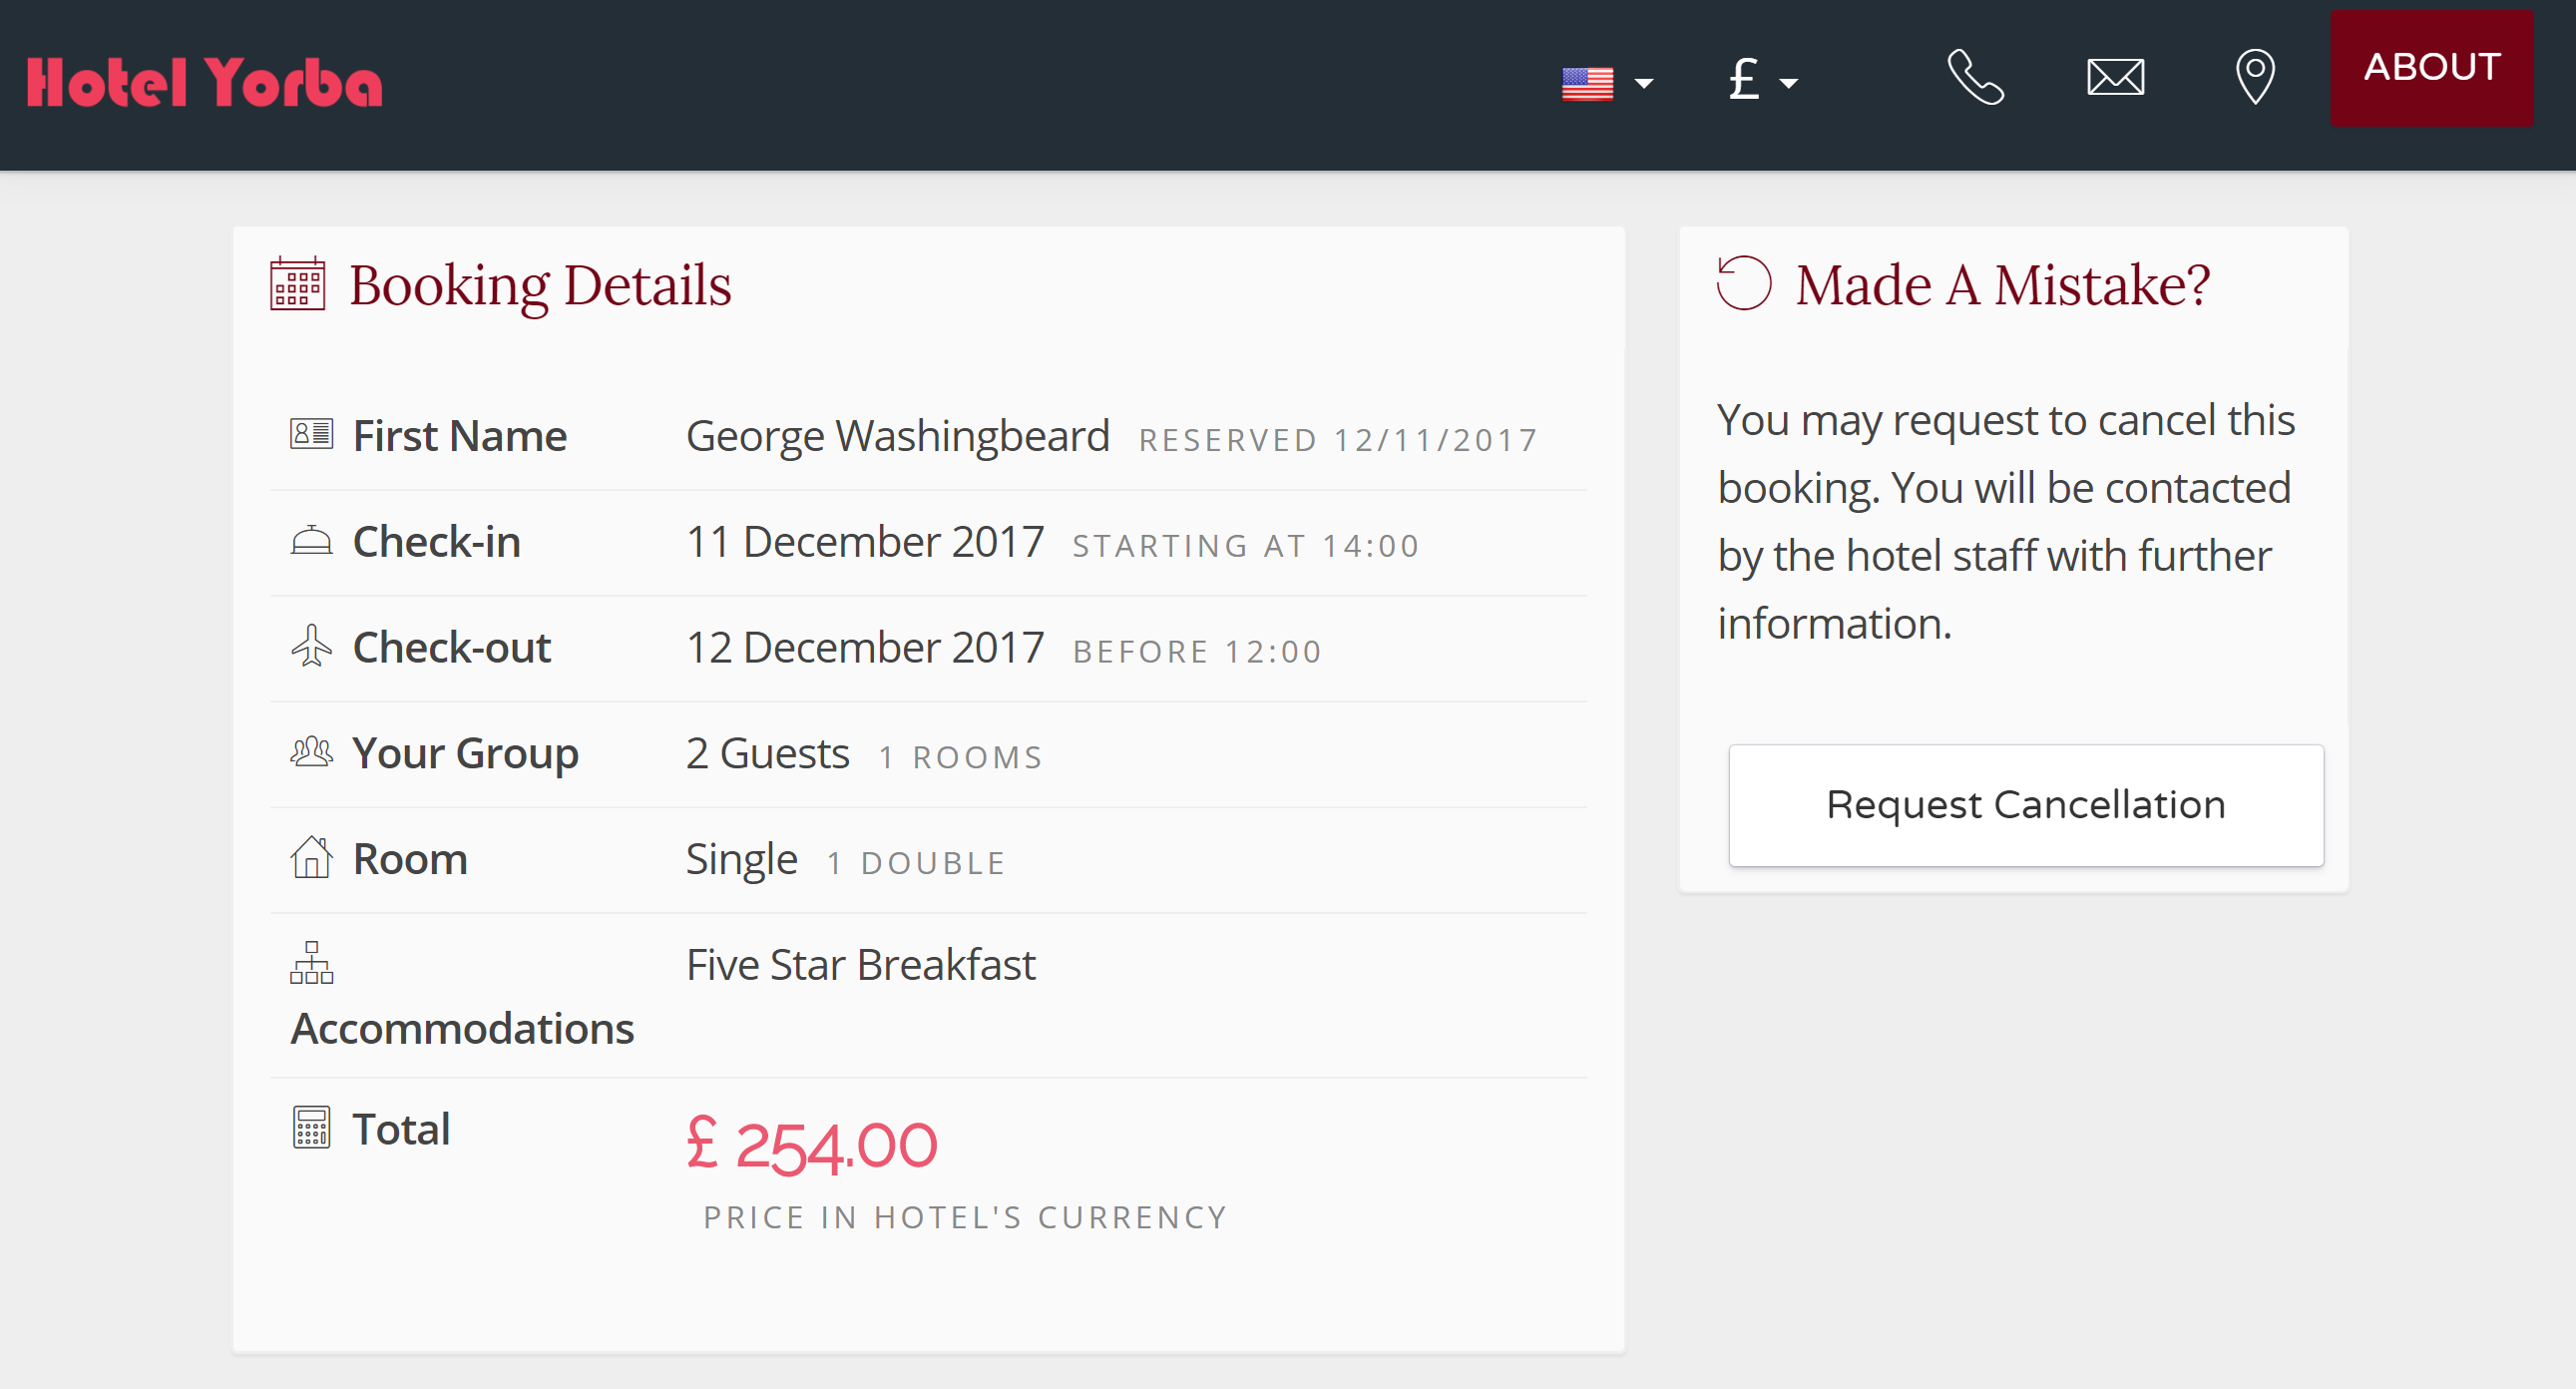 Here you see the electronic invoice available to your guests, and you should receive a confirmation email. You guests can access your room service menu, messaging, and review services from this page once they check-in/out. More on this in Section IV.